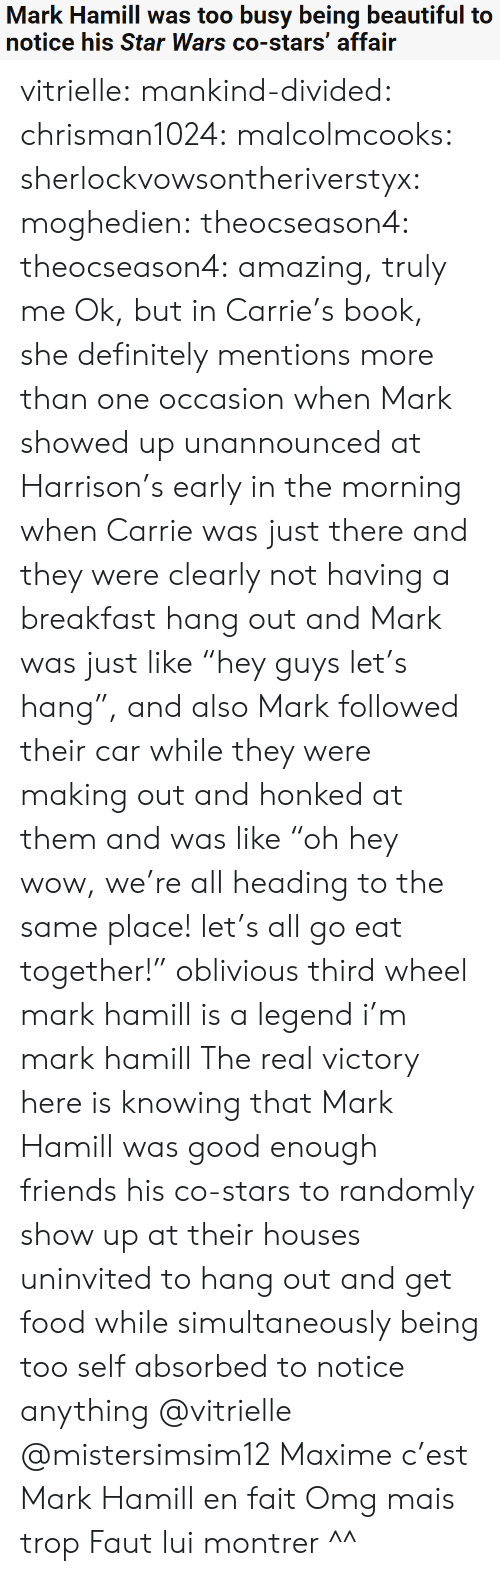 """fait: Mark Hamill was too busy being beautiful to  notice his Star Wars co-stars' affair vitrielle:  mankind-divided:  chrisman1024:  malcolmcooks:  sherlockvowsontheriverstyx:  moghedien:  theocseason4:  theocseason4: amazing, truly me  Ok, but in Carrie's book, she definitely mentions more than one occasion when Mark showed up unannounced at Harrison's early in the morning when Carrie was just there and they were clearly not having a breakfast hang out and Mark was just like """"hey guys let's hang"""", and also Mark followed their car while they were making out and honked at them and was like """"oh hey wow, we're all heading to the same place! let's all go eat together!""""   oblivious third wheel mark hamill is a legend   i'm mark hamill   The real victory here is knowing that Mark Hamill was good enough friends his co-stars to randomly show up at their houses uninvited to hang out and get food while simultaneously being too self absorbed to notice anything  @vitrielle @mistersimsim12 Maxime c'est Mark Hamill en fait  Omg mais trop Faut lui montrer ^^"""